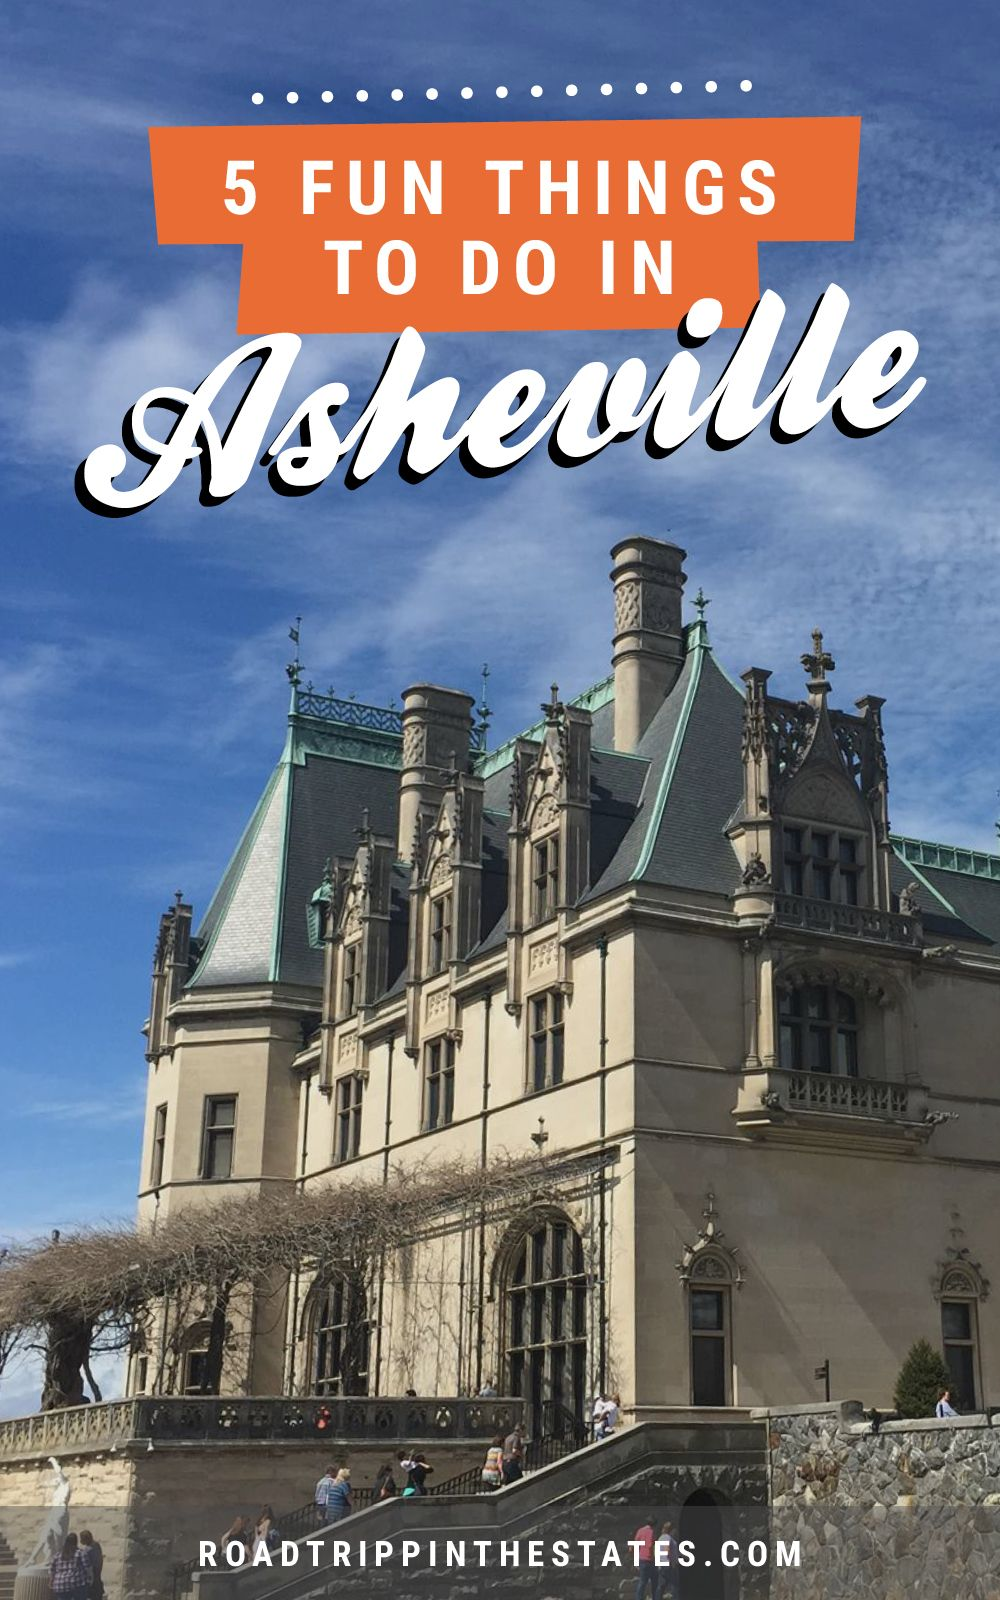 5 fun things to do in asheville nc road trippin the